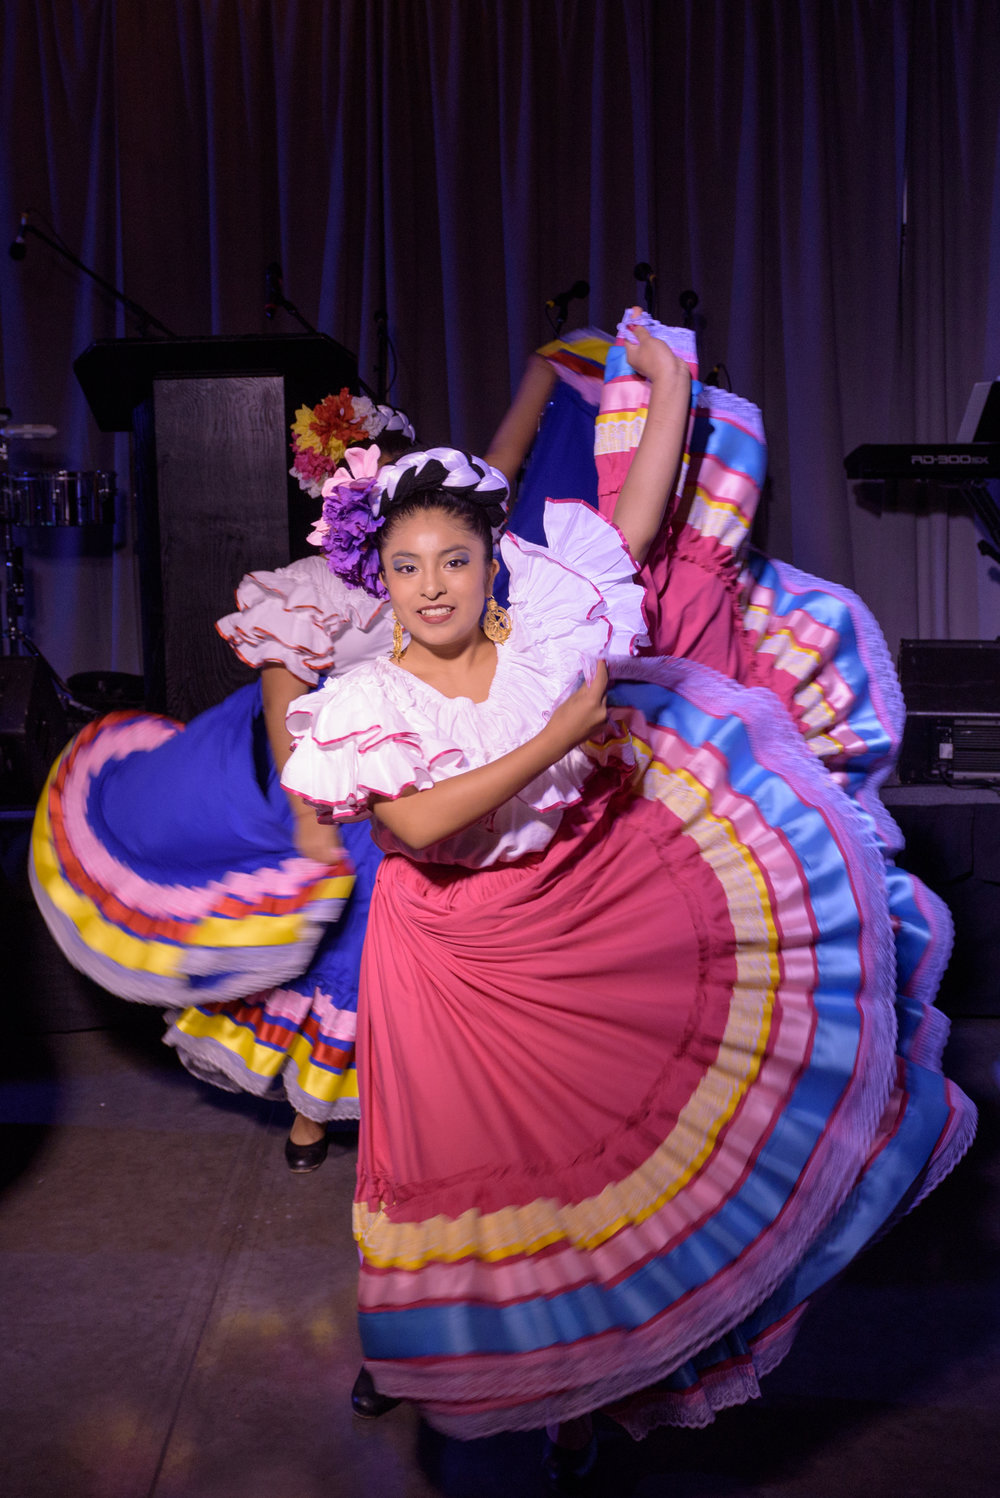 Ballet Folklórico's Corazones Alegres were one of the talented groups that provided entertainment at Noche Bella.